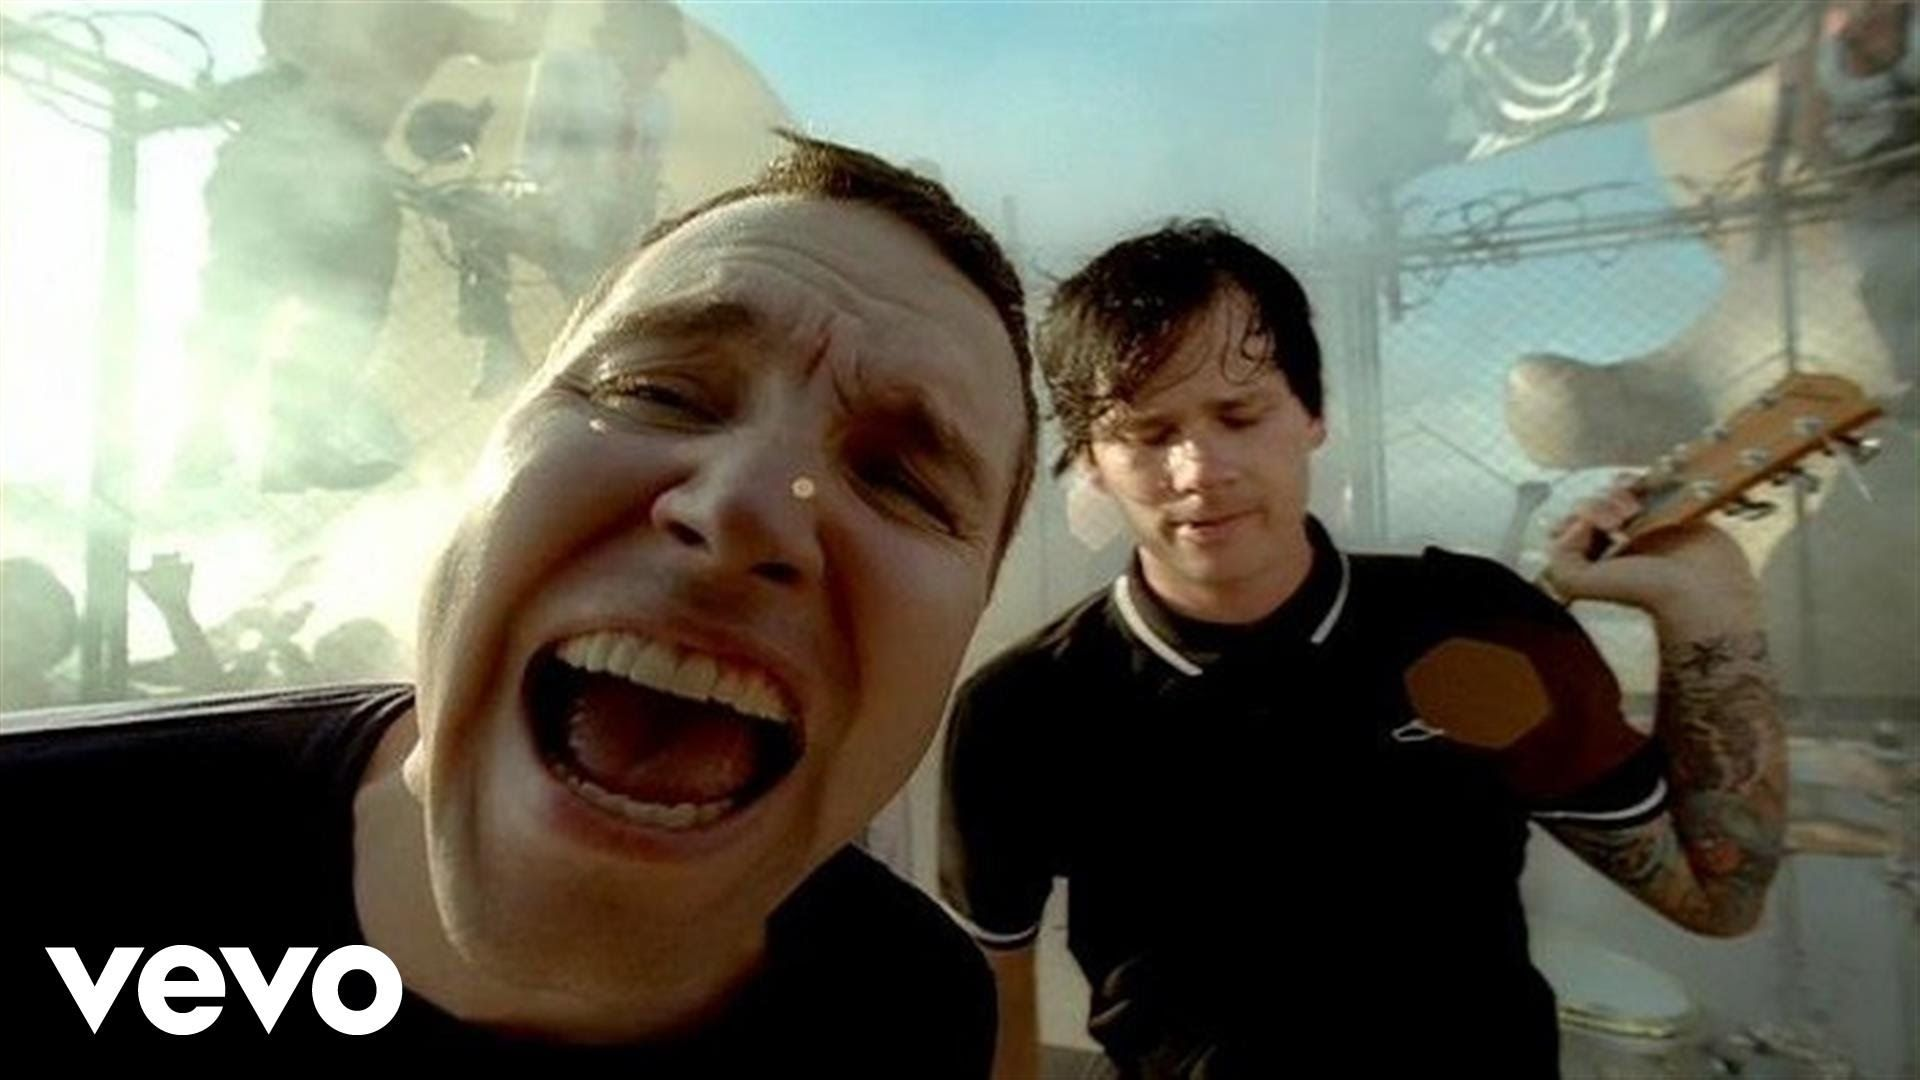 Blink 182 Feeling This Blink 182 Blink 182 Video Best Rock Music